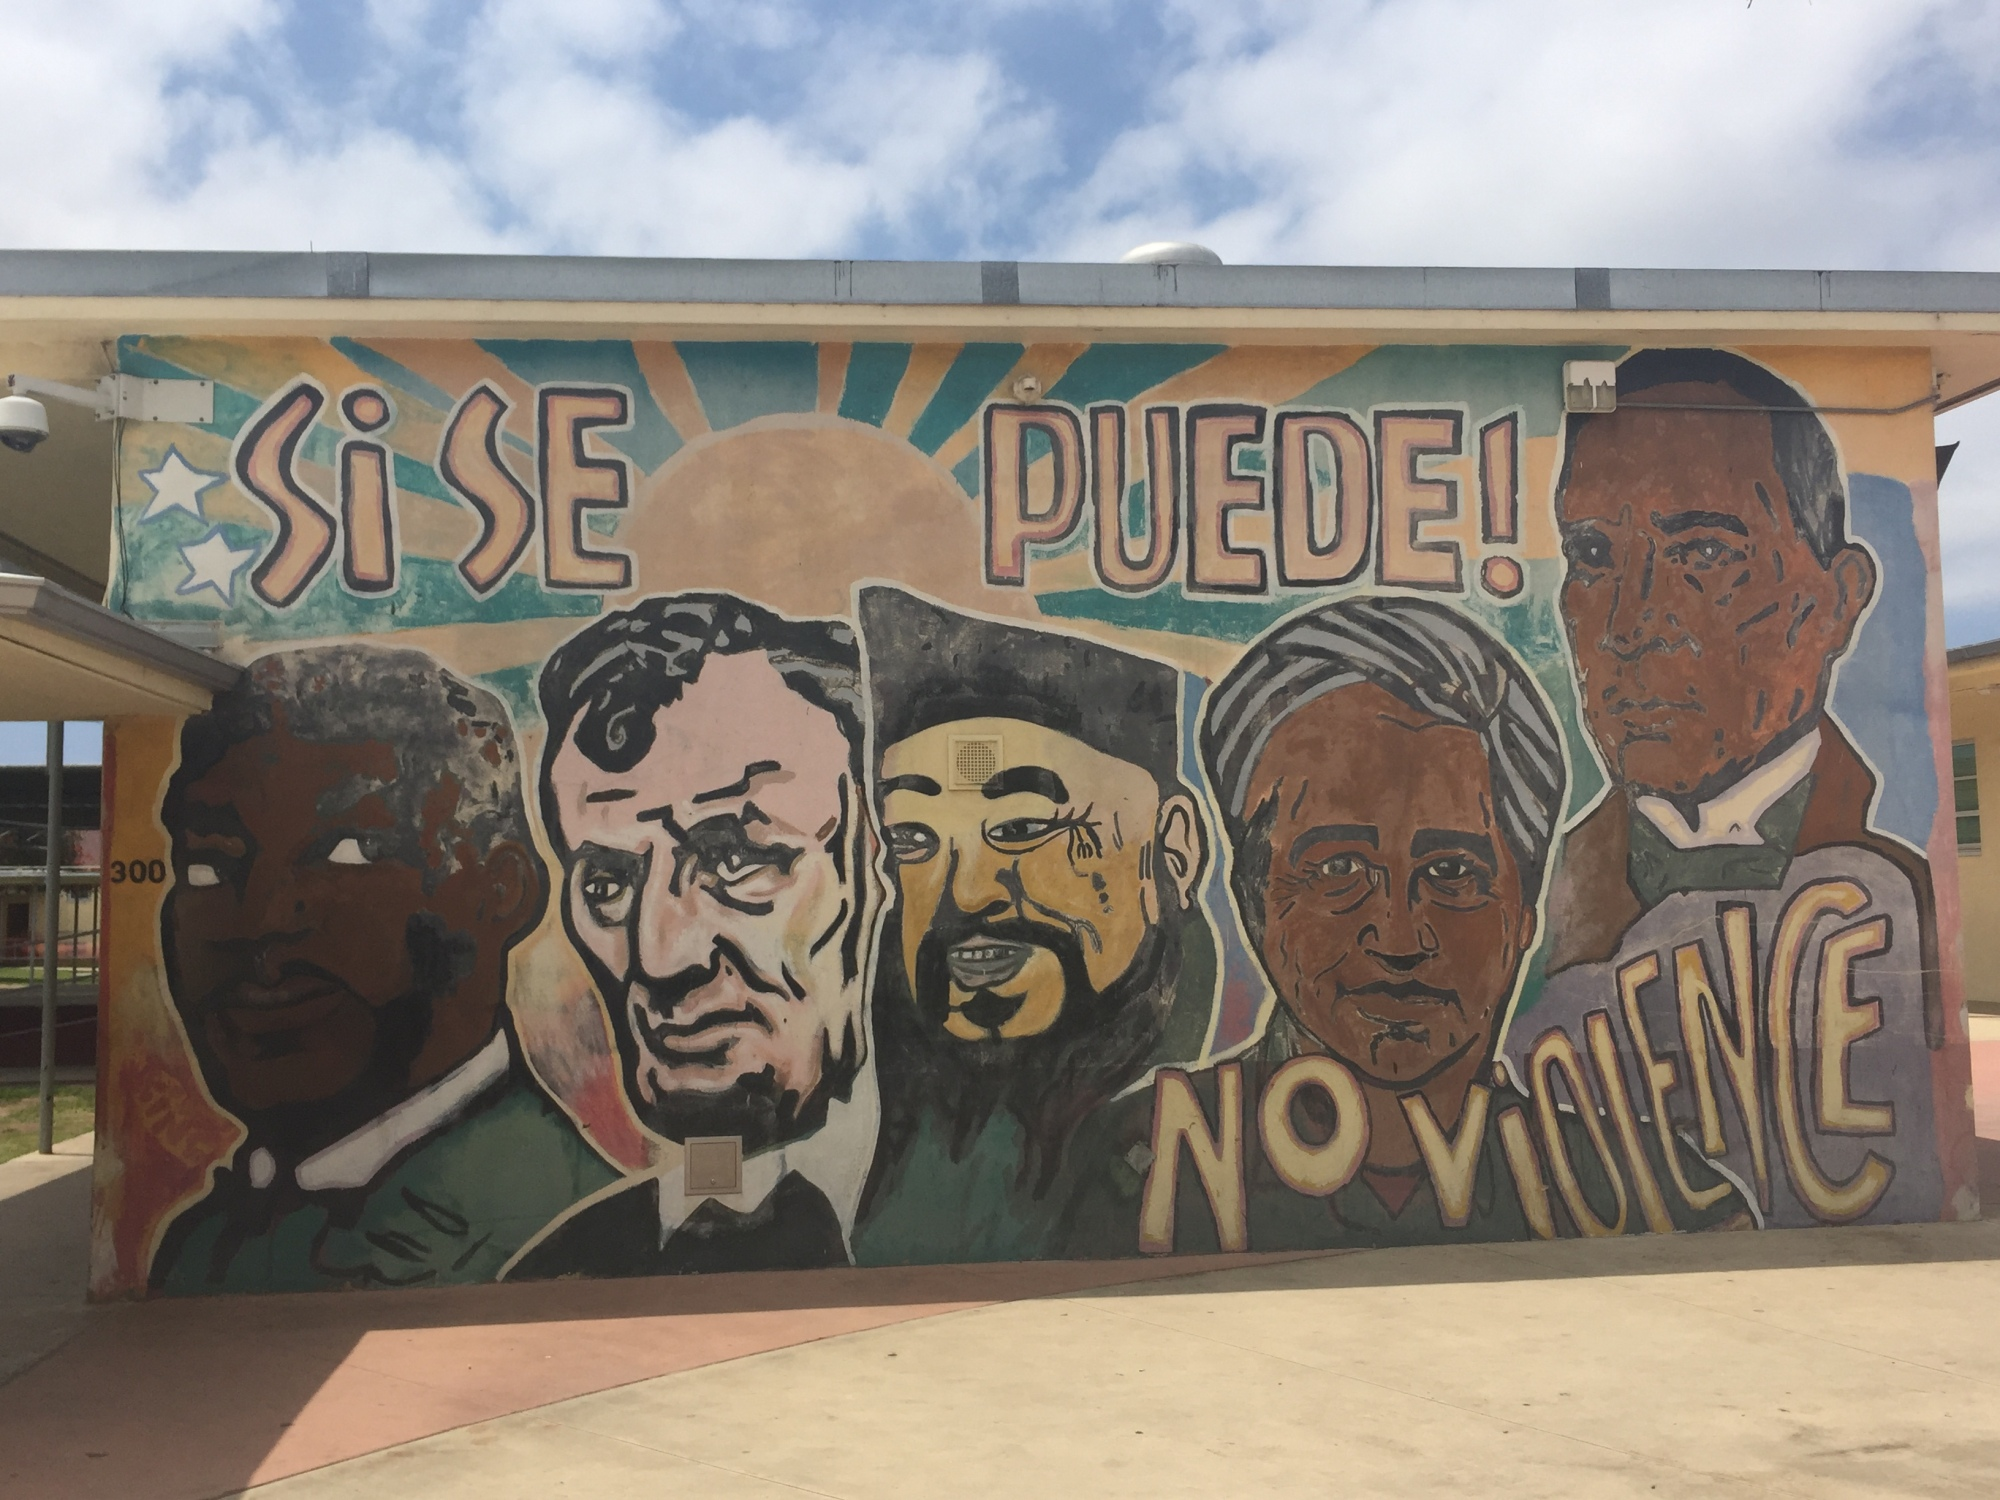 This is an example of student voice graffiti